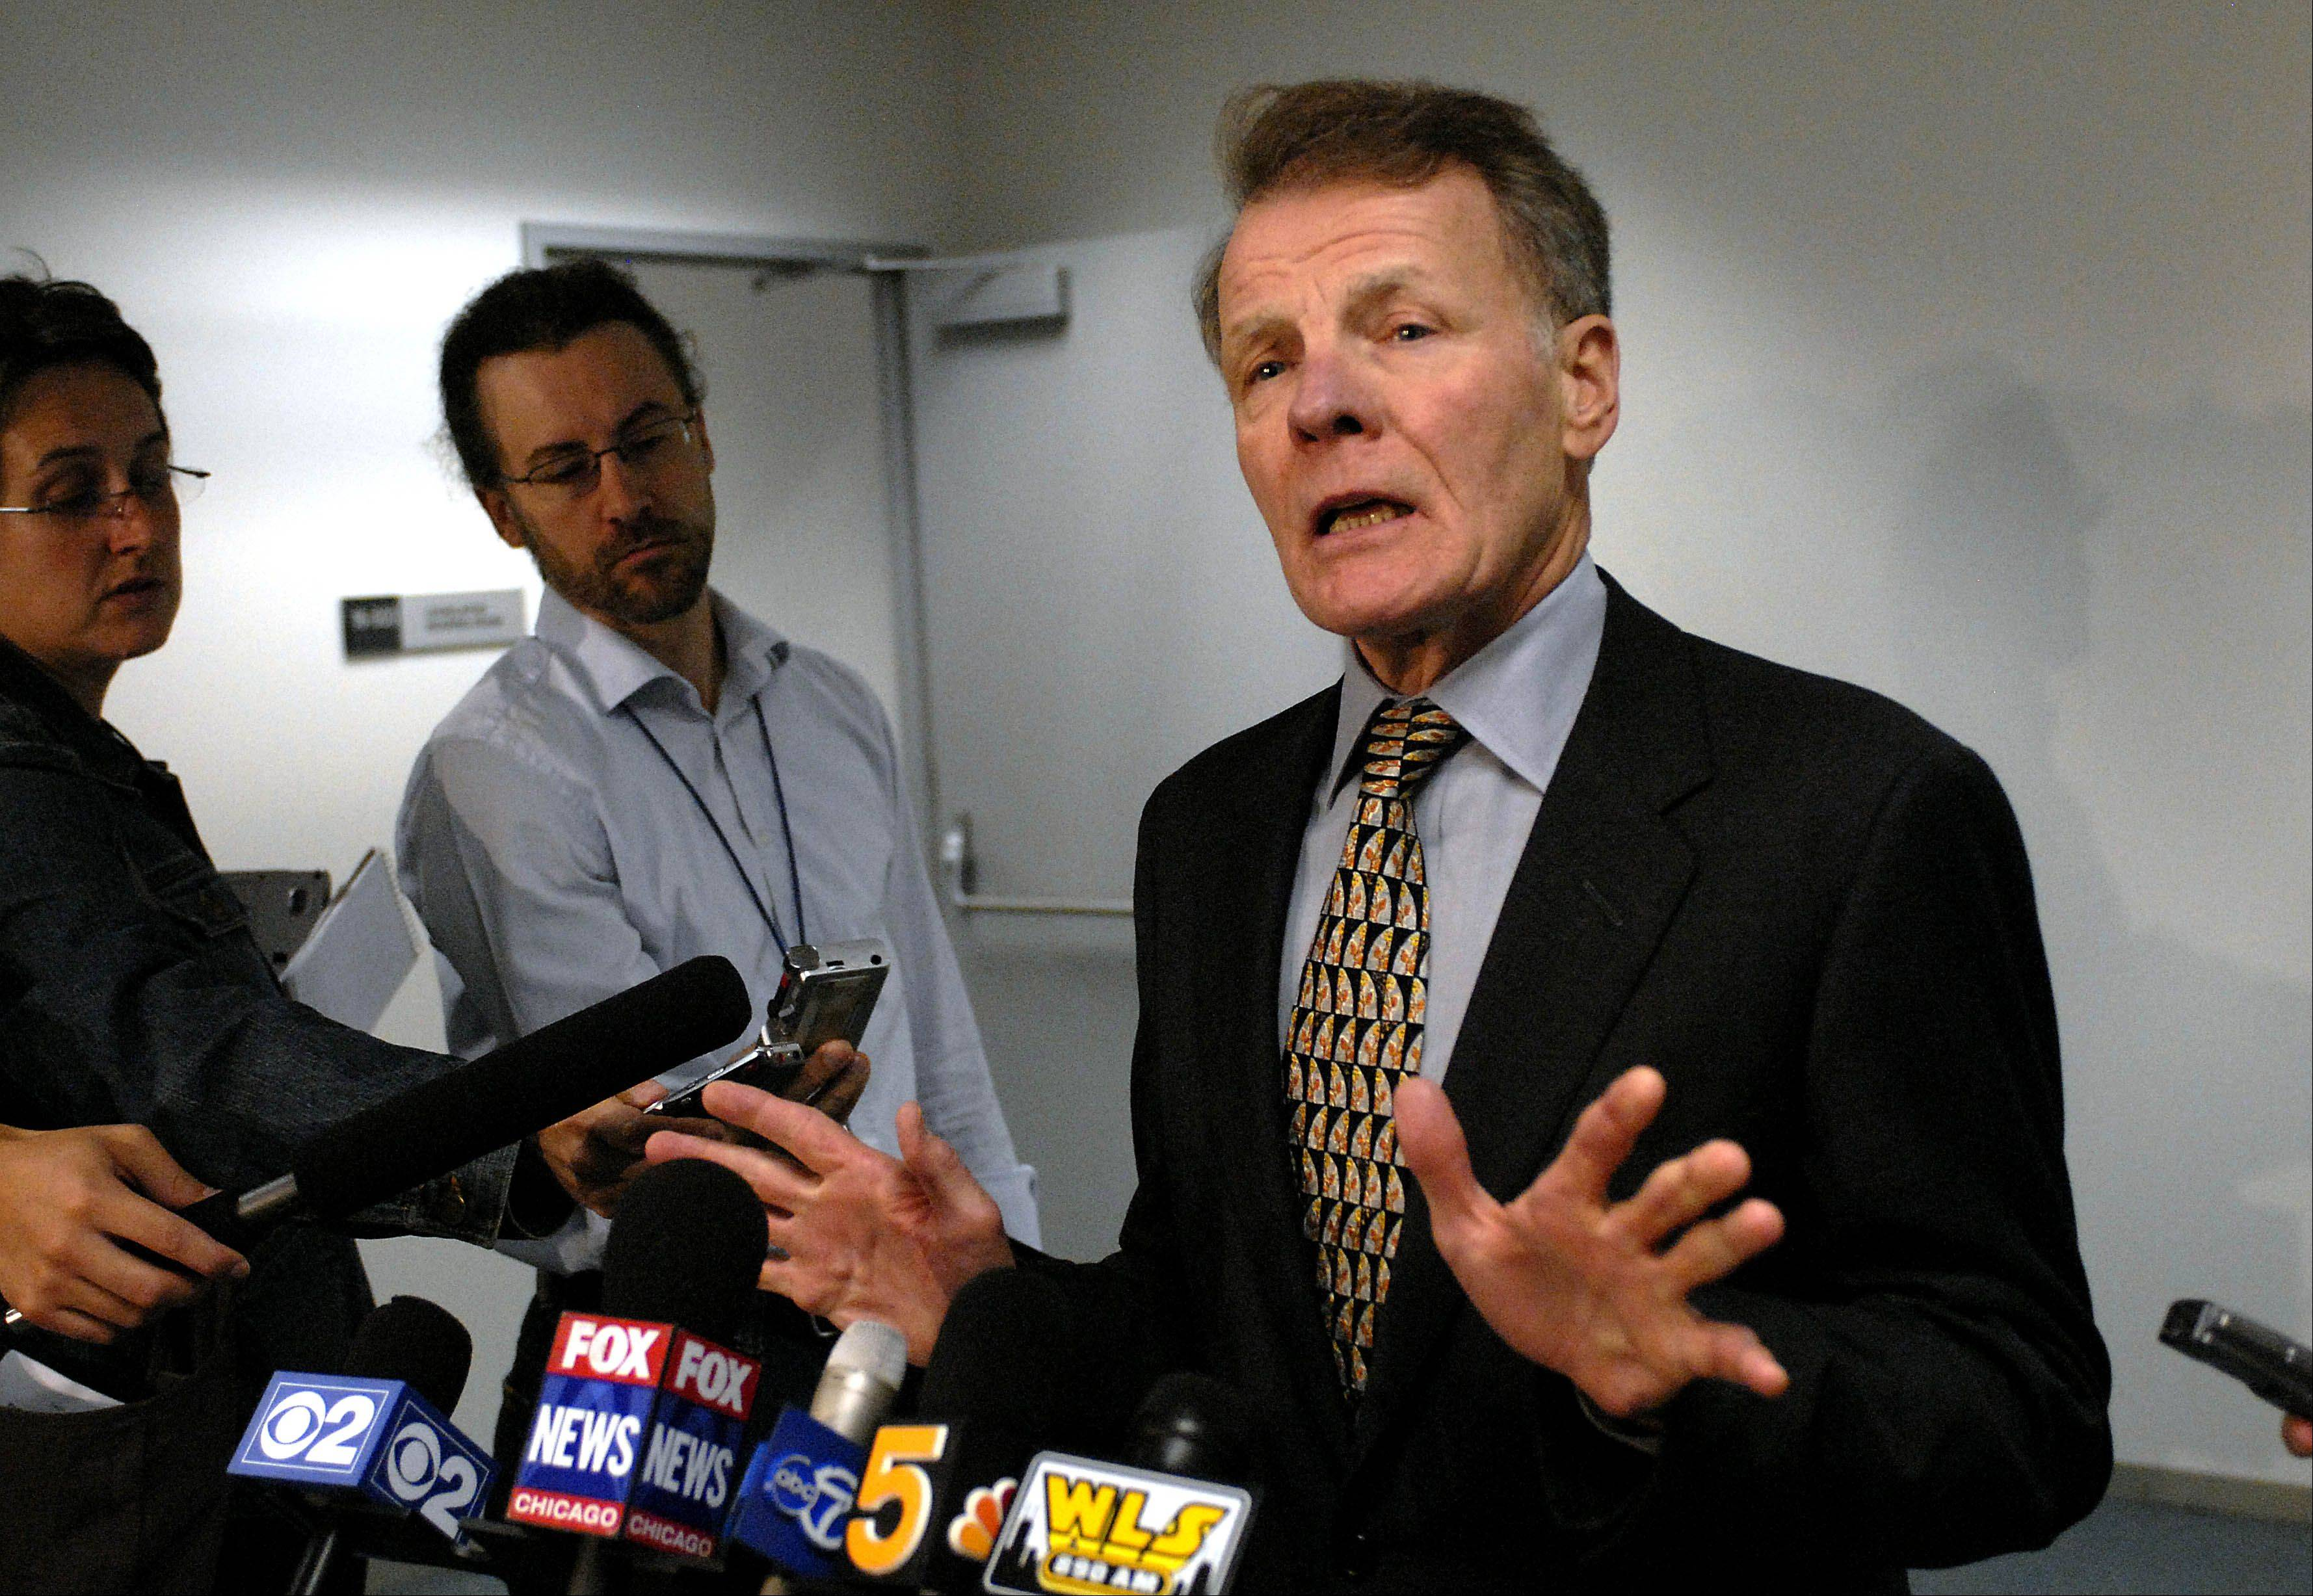 Could Madigan's pension move bust gridlock?